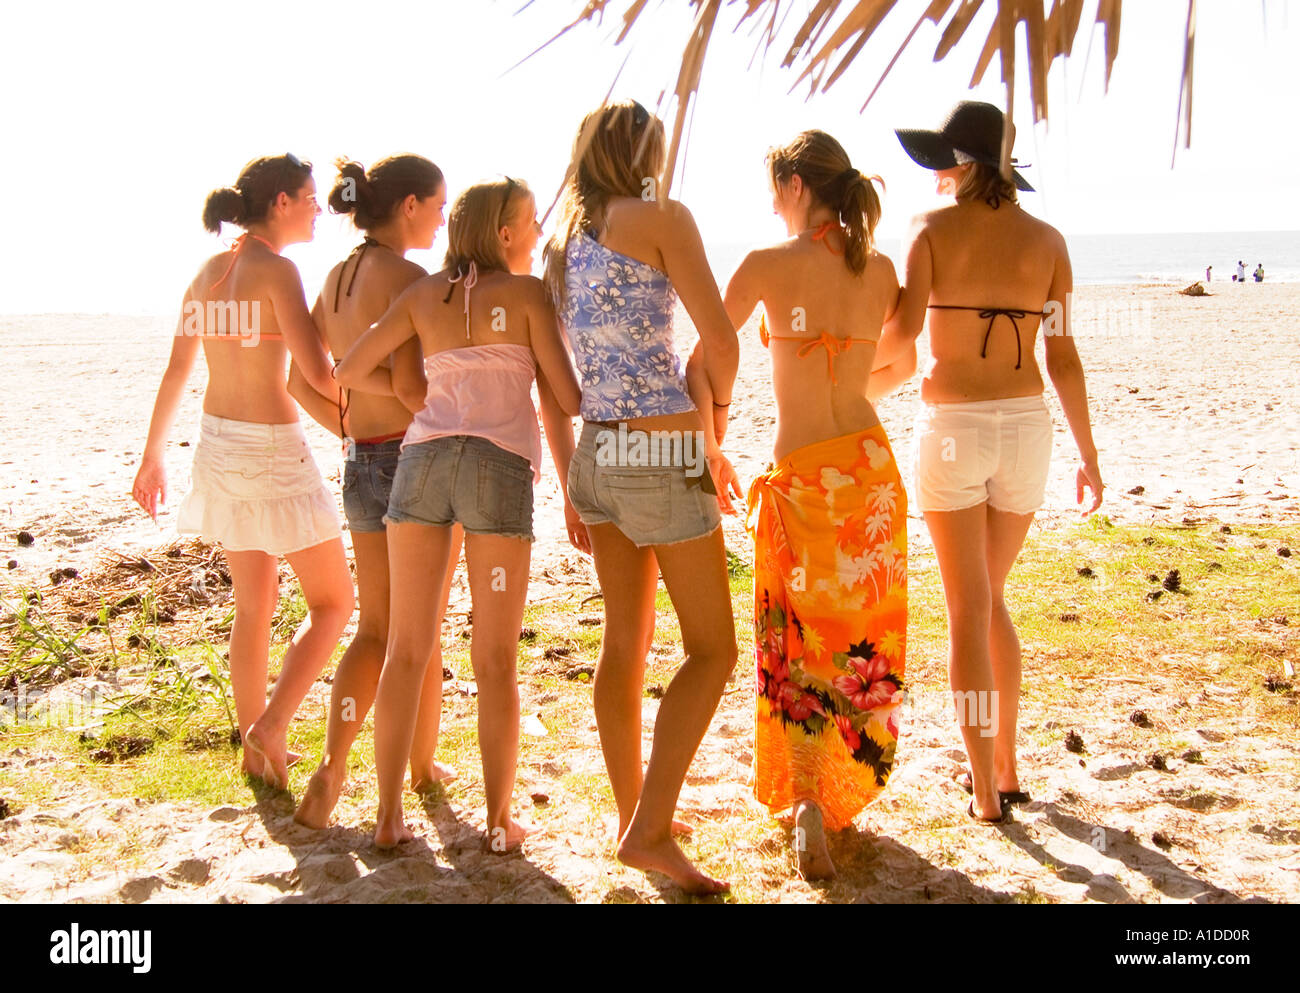 Six Caucasian Teen Girls (15-21) Walking Arm in Arm at Hunting Island, SC USA, Friendship and Togetherness Stock Photo